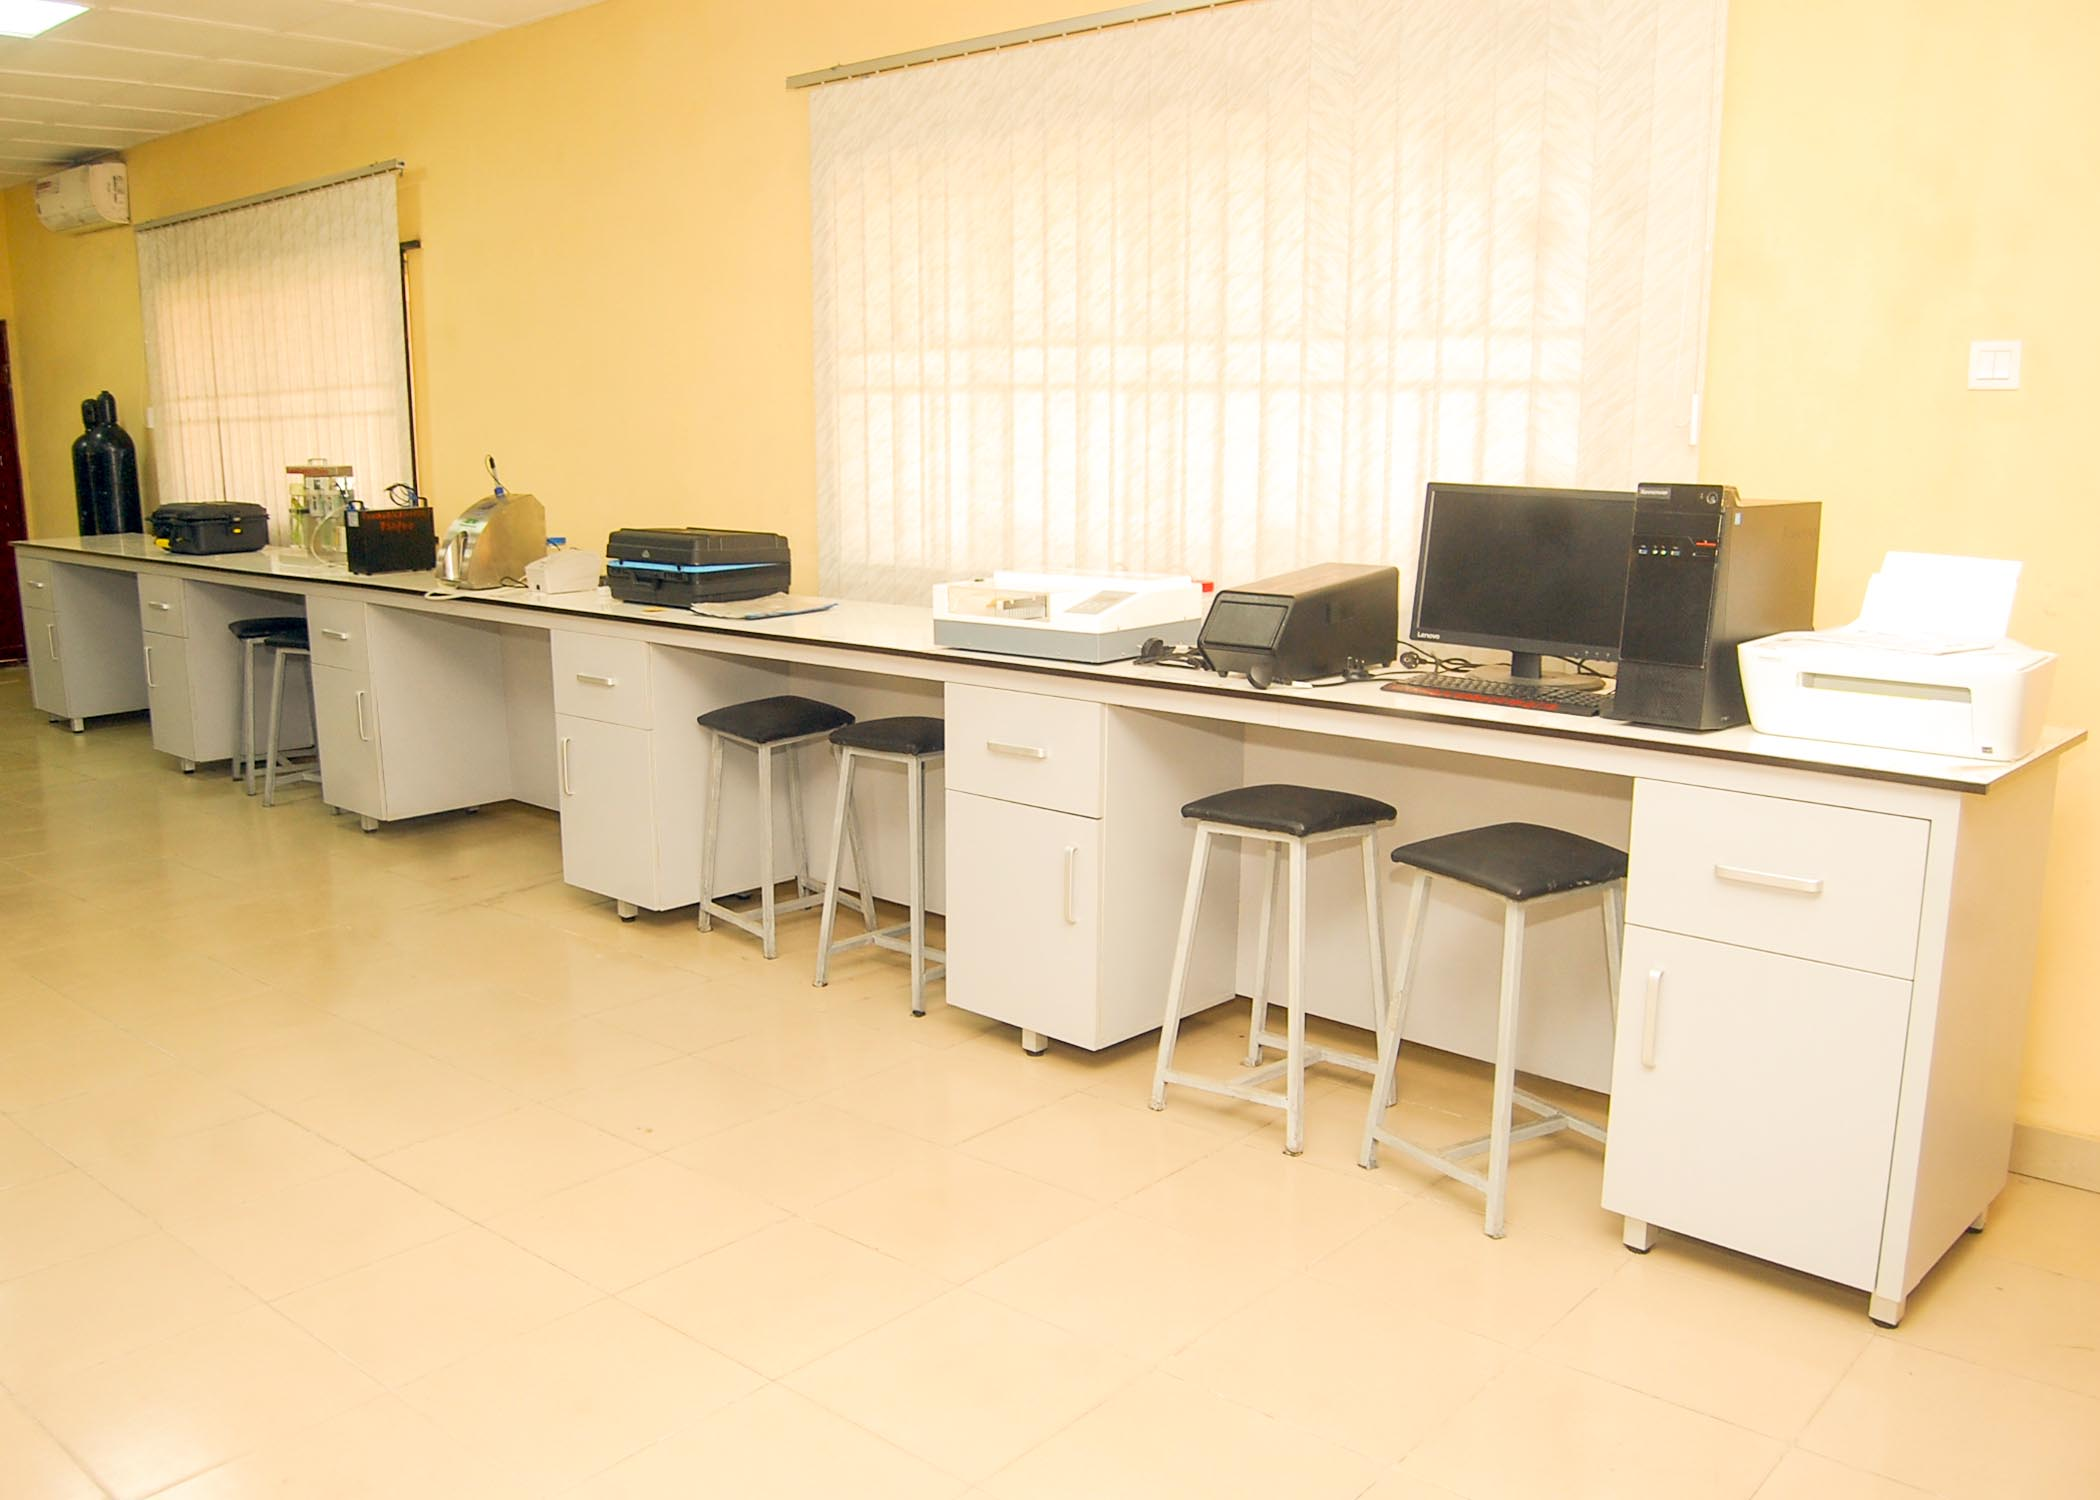 A part of interior view of the Laboratory